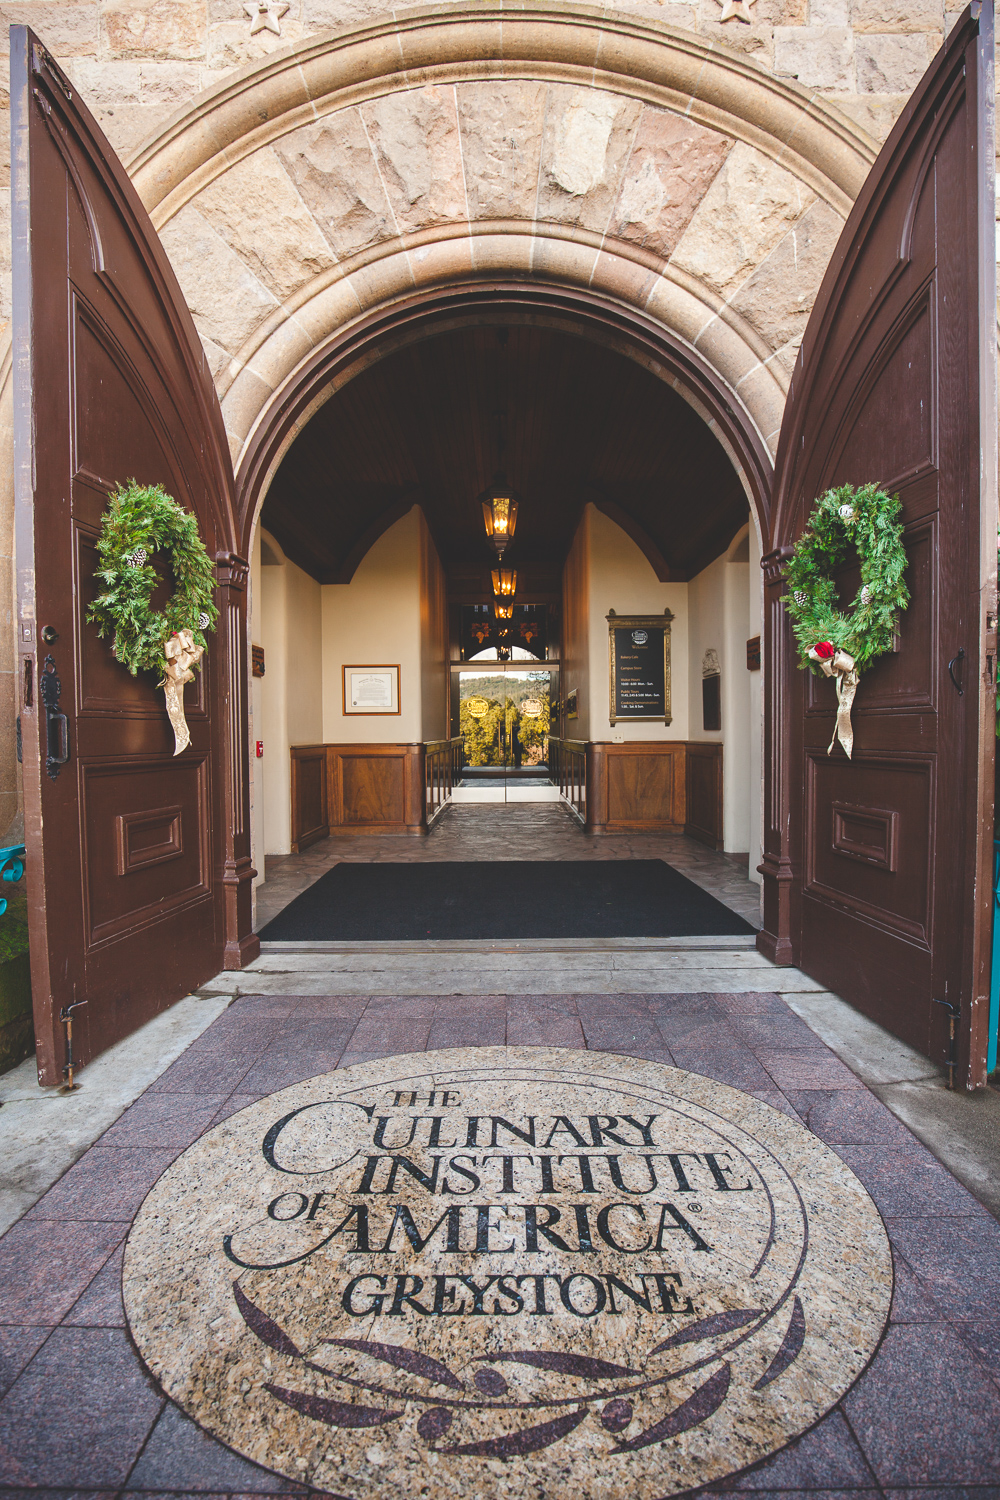 culinary institute of american greystone